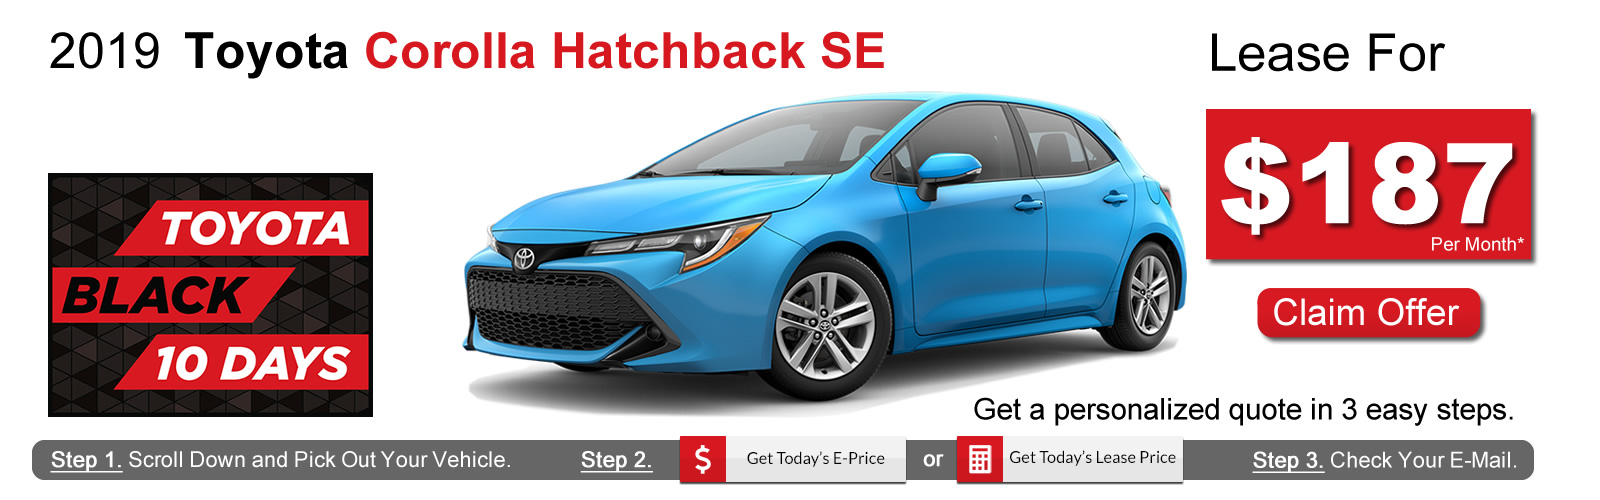 2019 Toyota Corolla Hatchback Lease Deals near Boston, MA